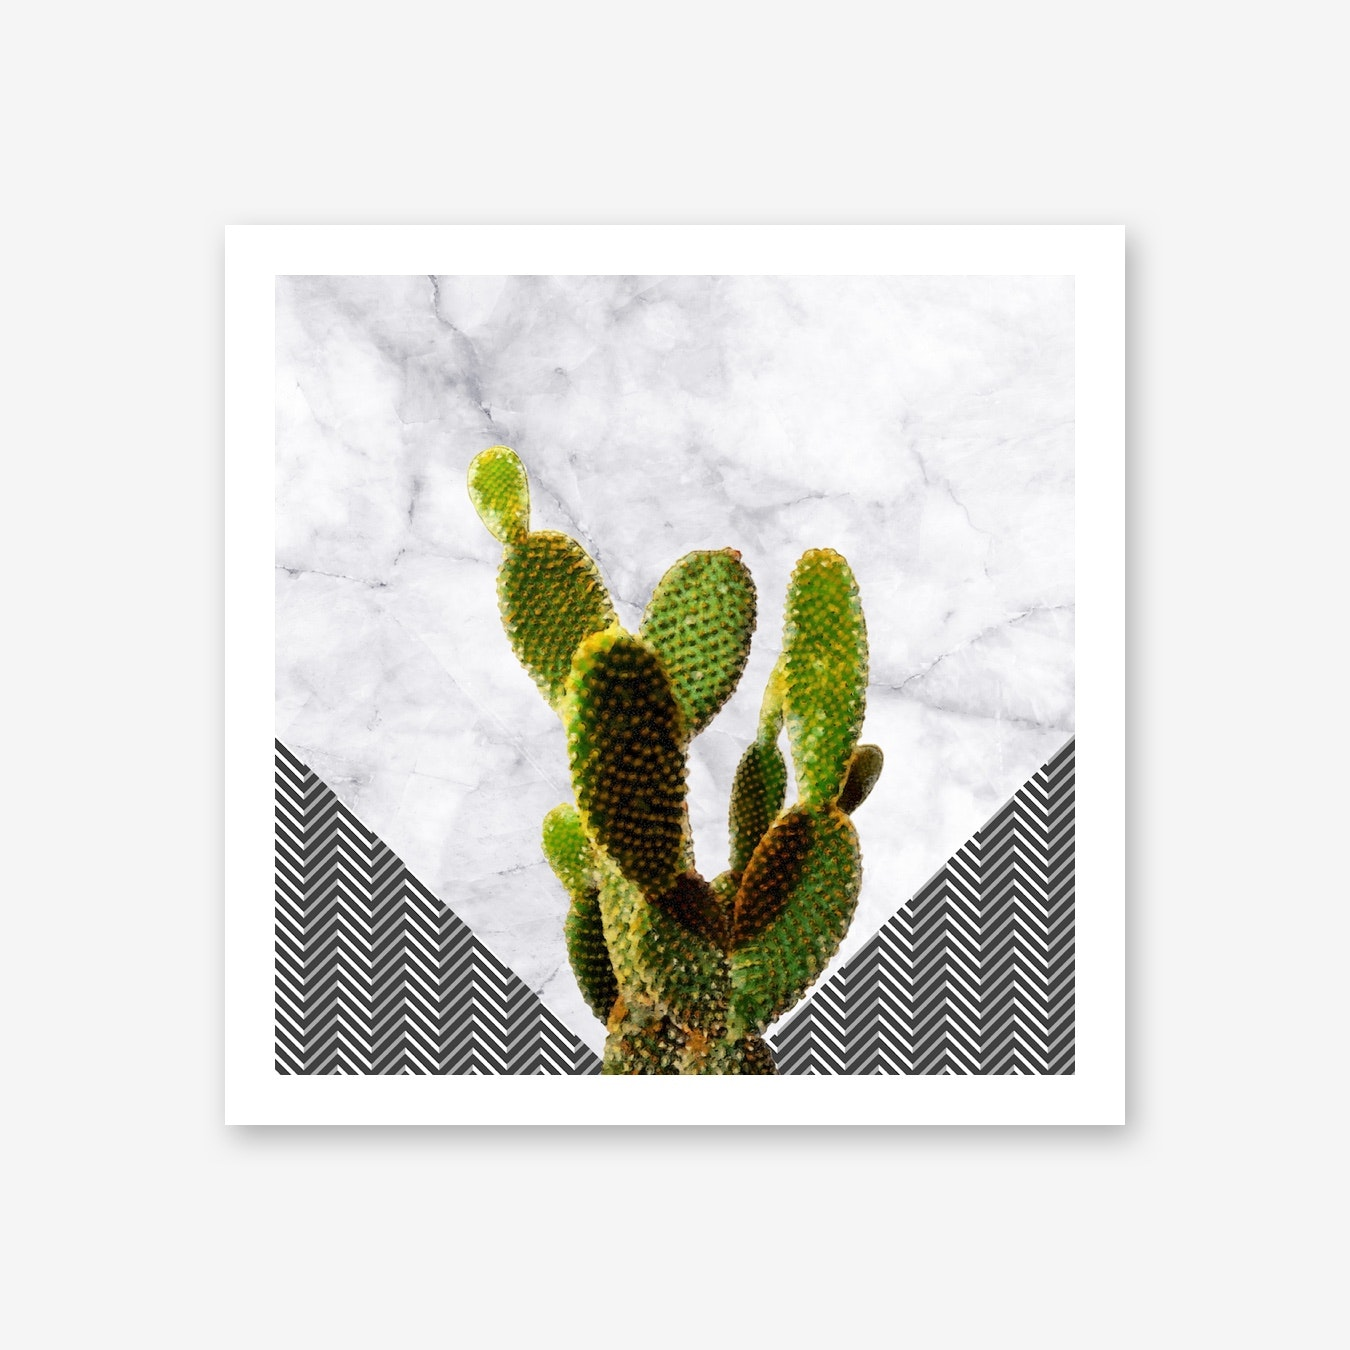 Cactus on White Marble and Zigzag Wall Art Print on leopard house plant, bamboo house plant, king house plant, red house plant, spiral house plant, succulent plant identification house plant, peacock house plant, arrow house plant, purple house plant, mosaic house plant, green house plant, zipper house plant, butterfly house plant, striped house plant, orange house plant, ribbon house plant, croton house plant, angel house plant, flower house plant, polka dot house plant,